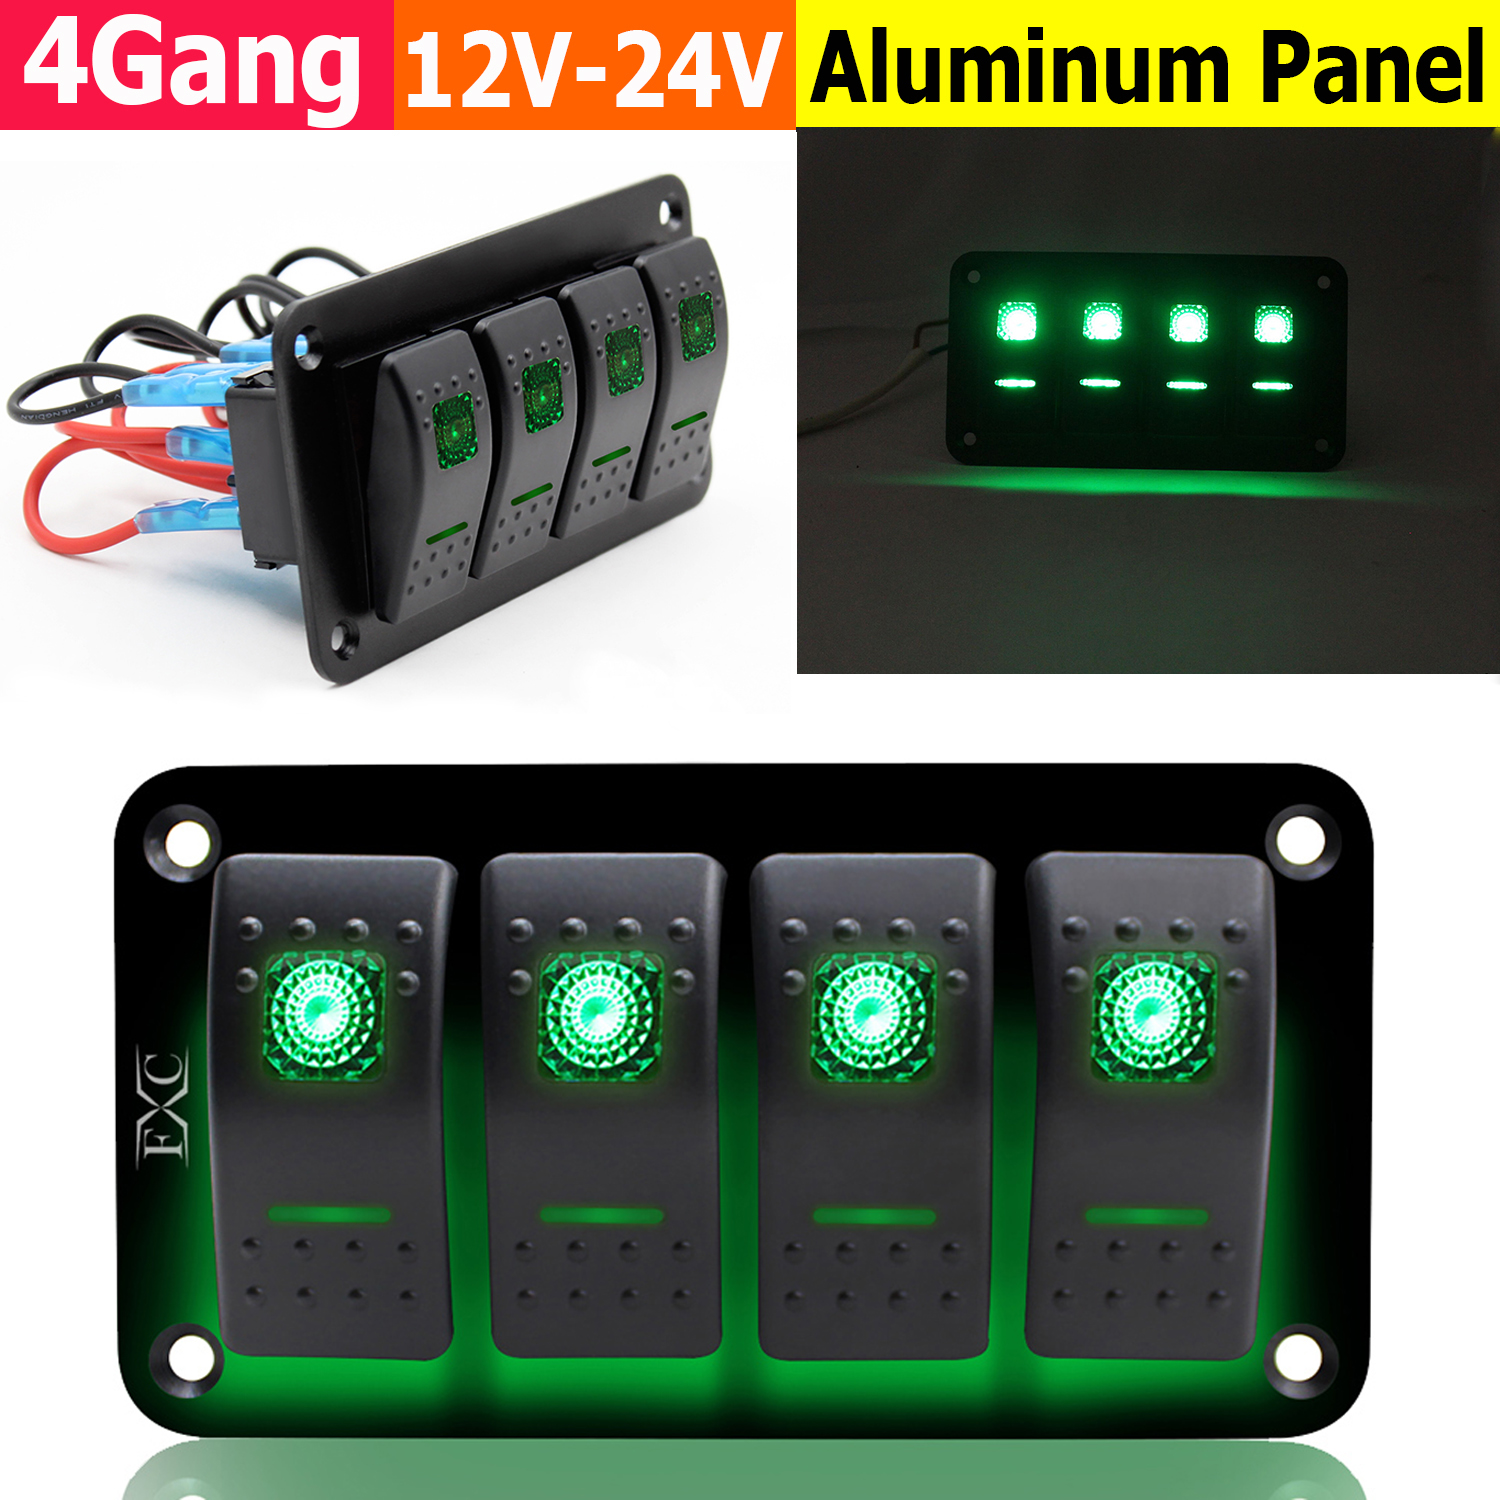 4 Gang Green LED Light Toggle Rocker Switches Combination Car RV Switch Panel